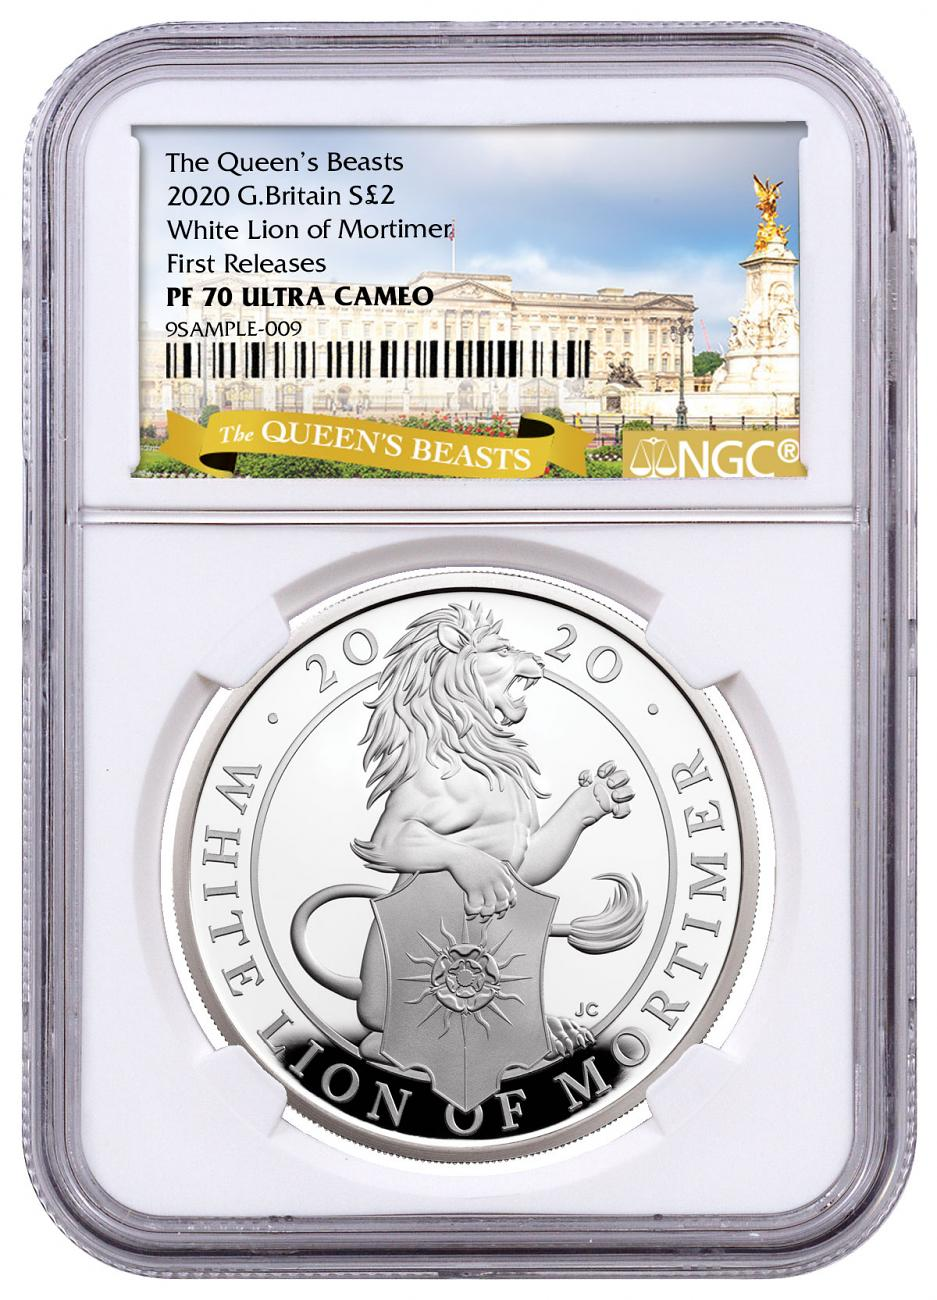 2020 Great Britain 1 oz Silver Queen's Beasts - White Lion of Mortimer Proof £2 Coin NGC PF70 UC FR Queen's Beasts Label